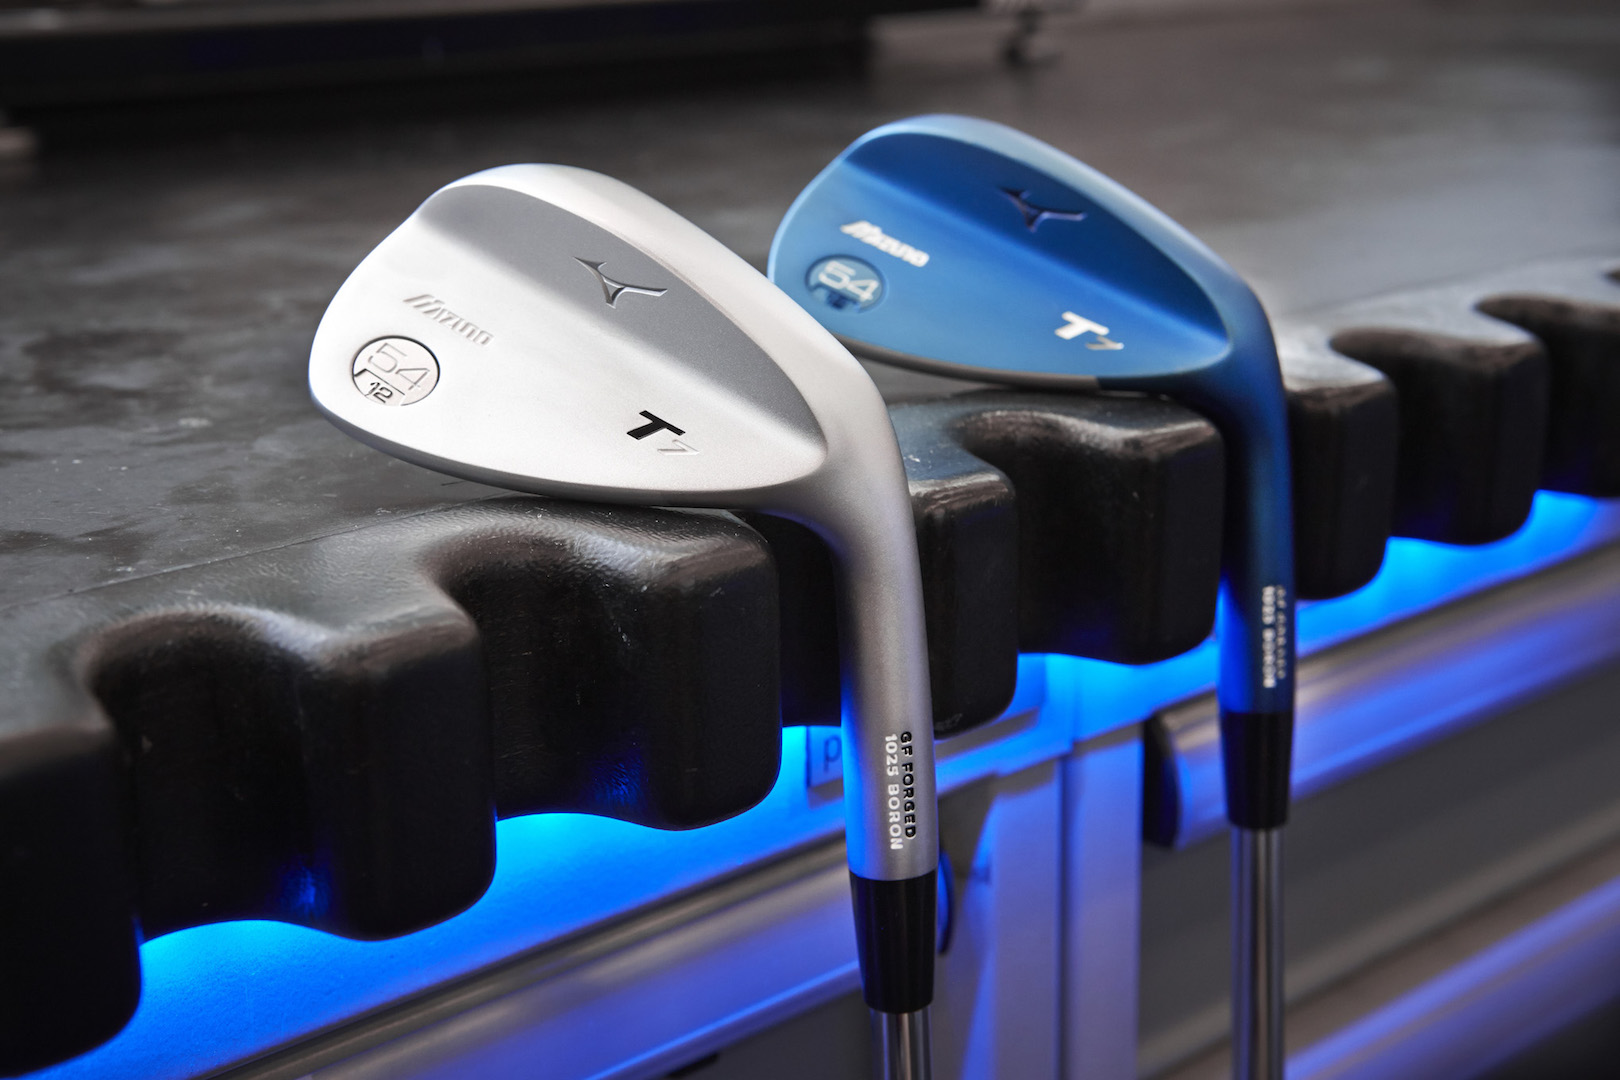 Mizuno's brand new T7 wedge